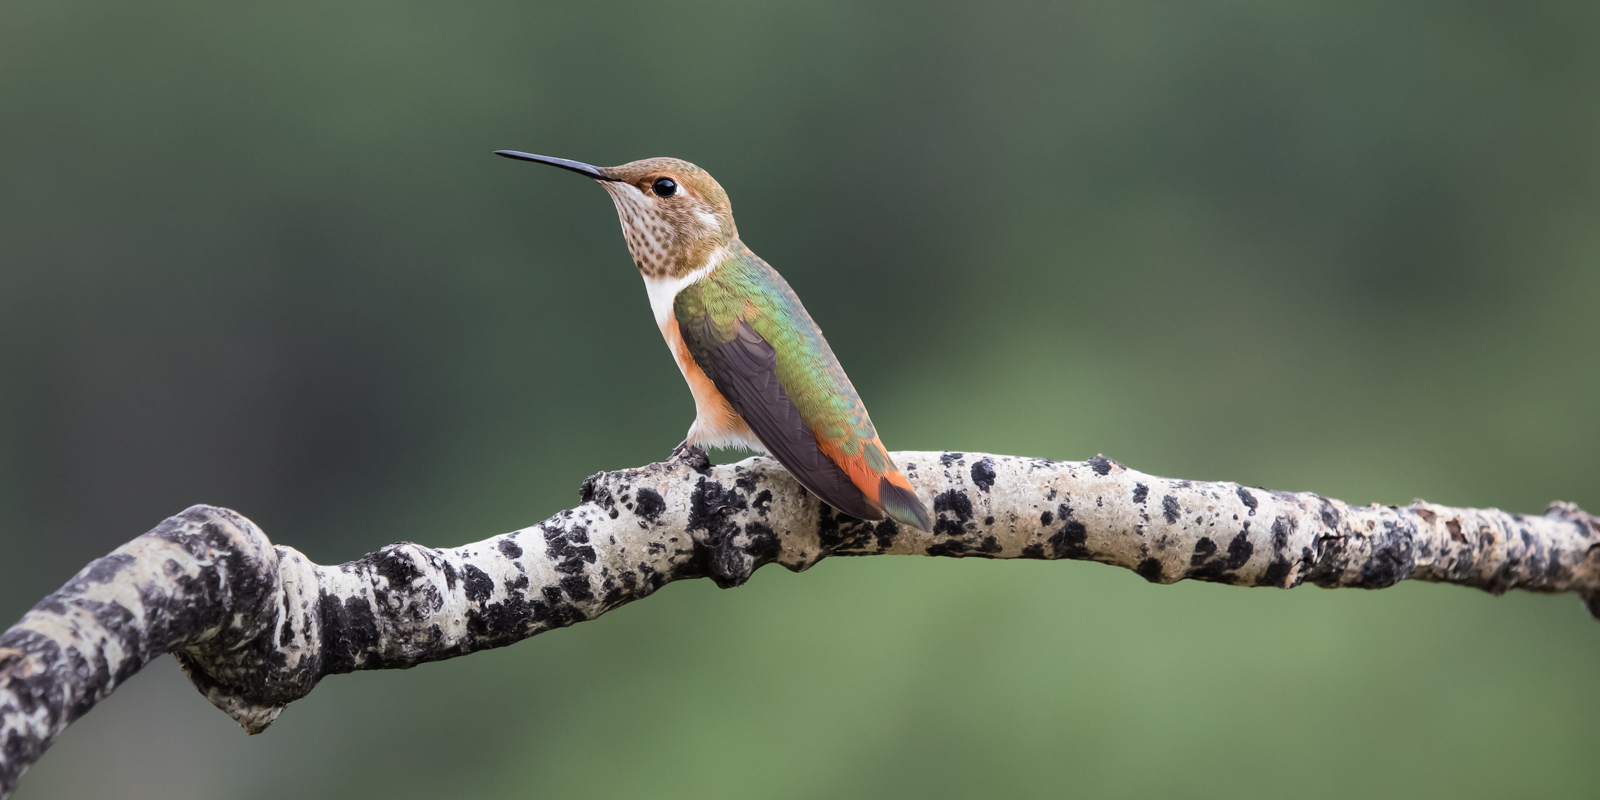 Aspen Perch, hummingbird, hummingbirds, fine art photography, New Mexico, South Central Mountains, monsoon, Ruidoso, Ruidoso New Mexico, rain, fine art, photo